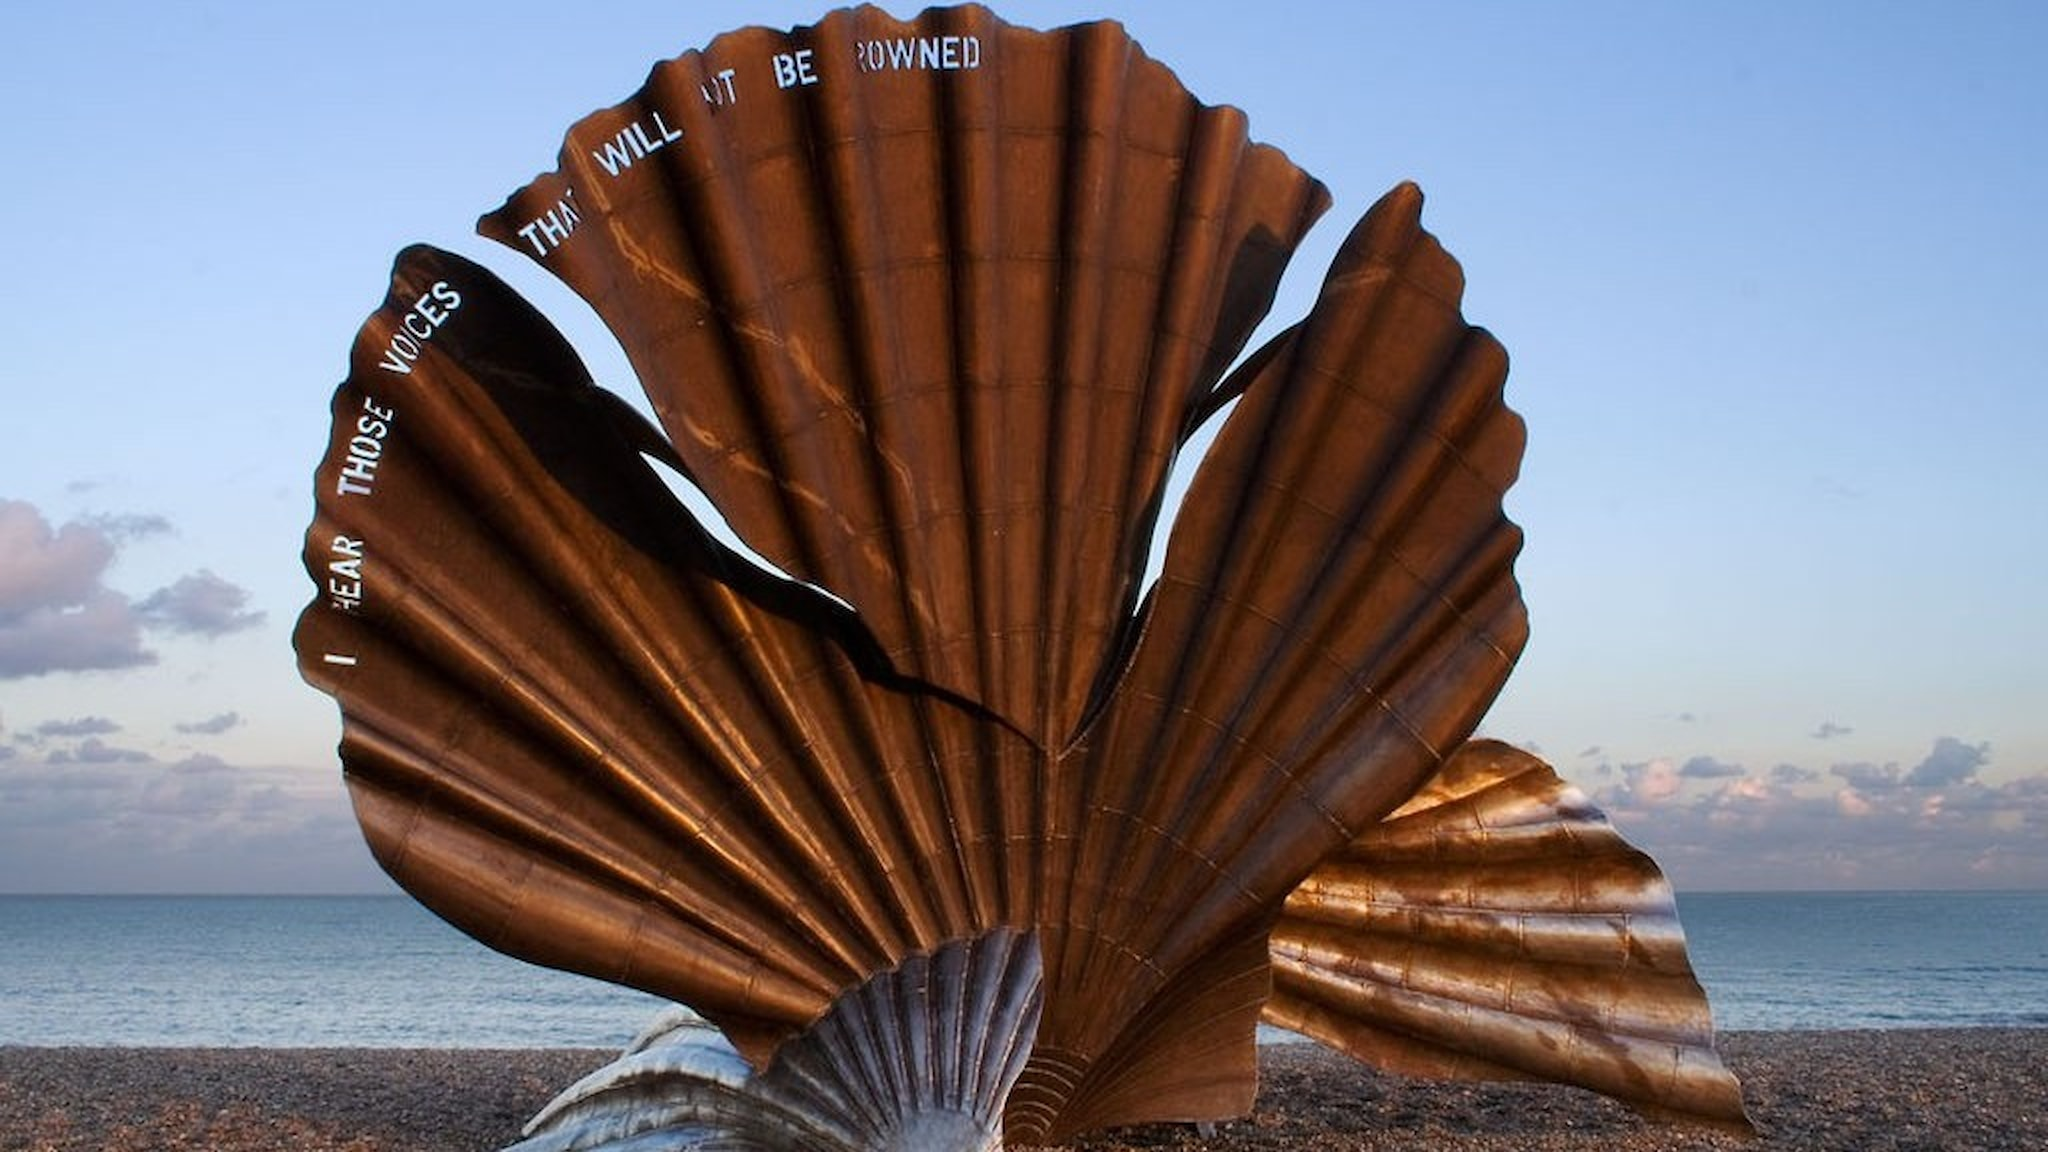 Maggi Hambling: The Scallop, Aldeburgh (med text ur Peter Grimes)